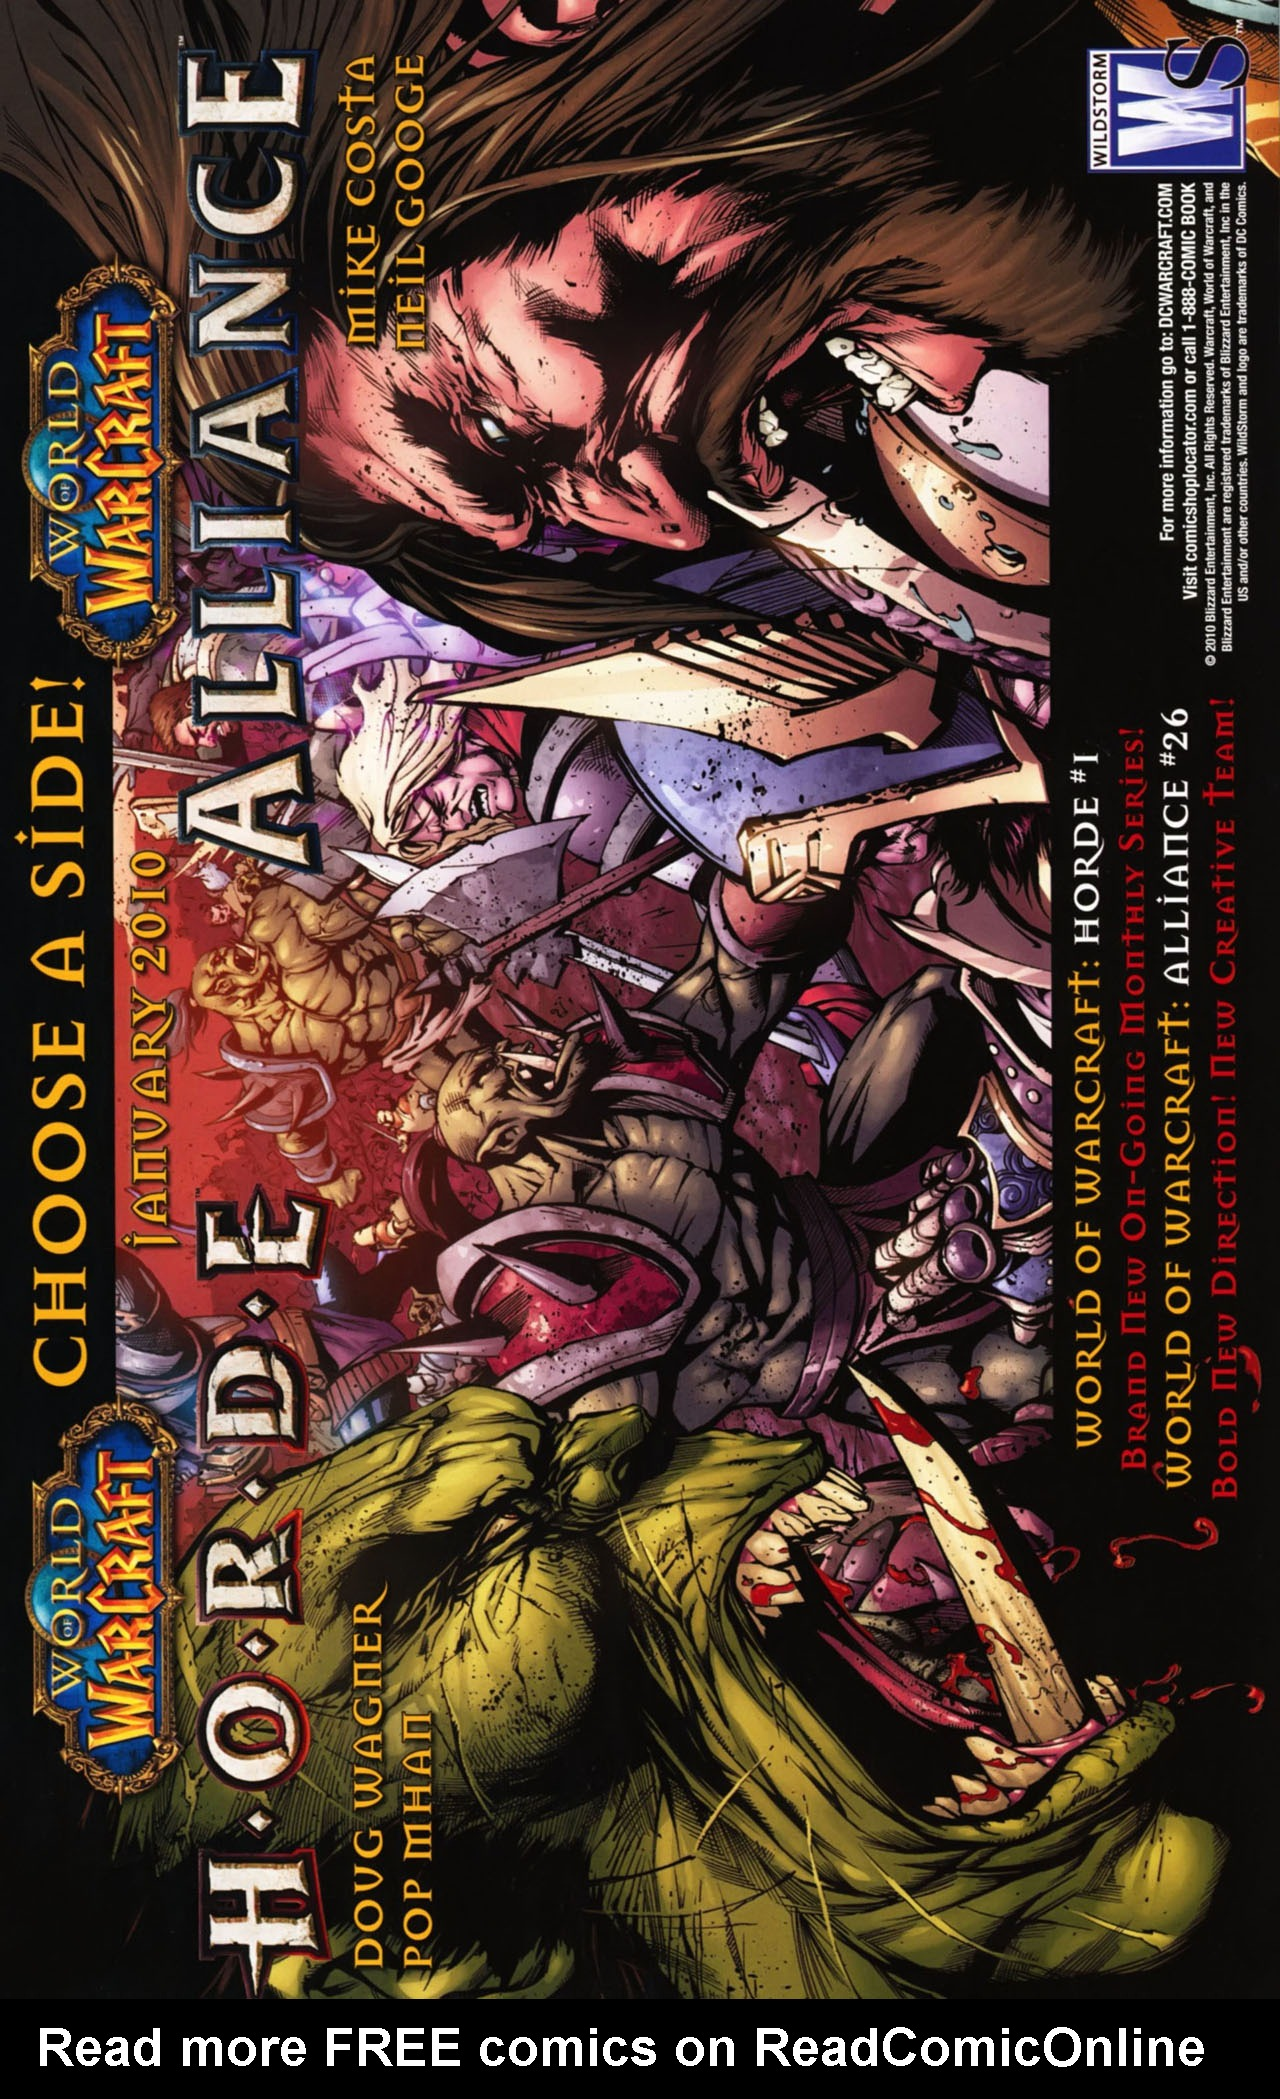 Read online World of Warcraft comic -  Issue #25 - 14